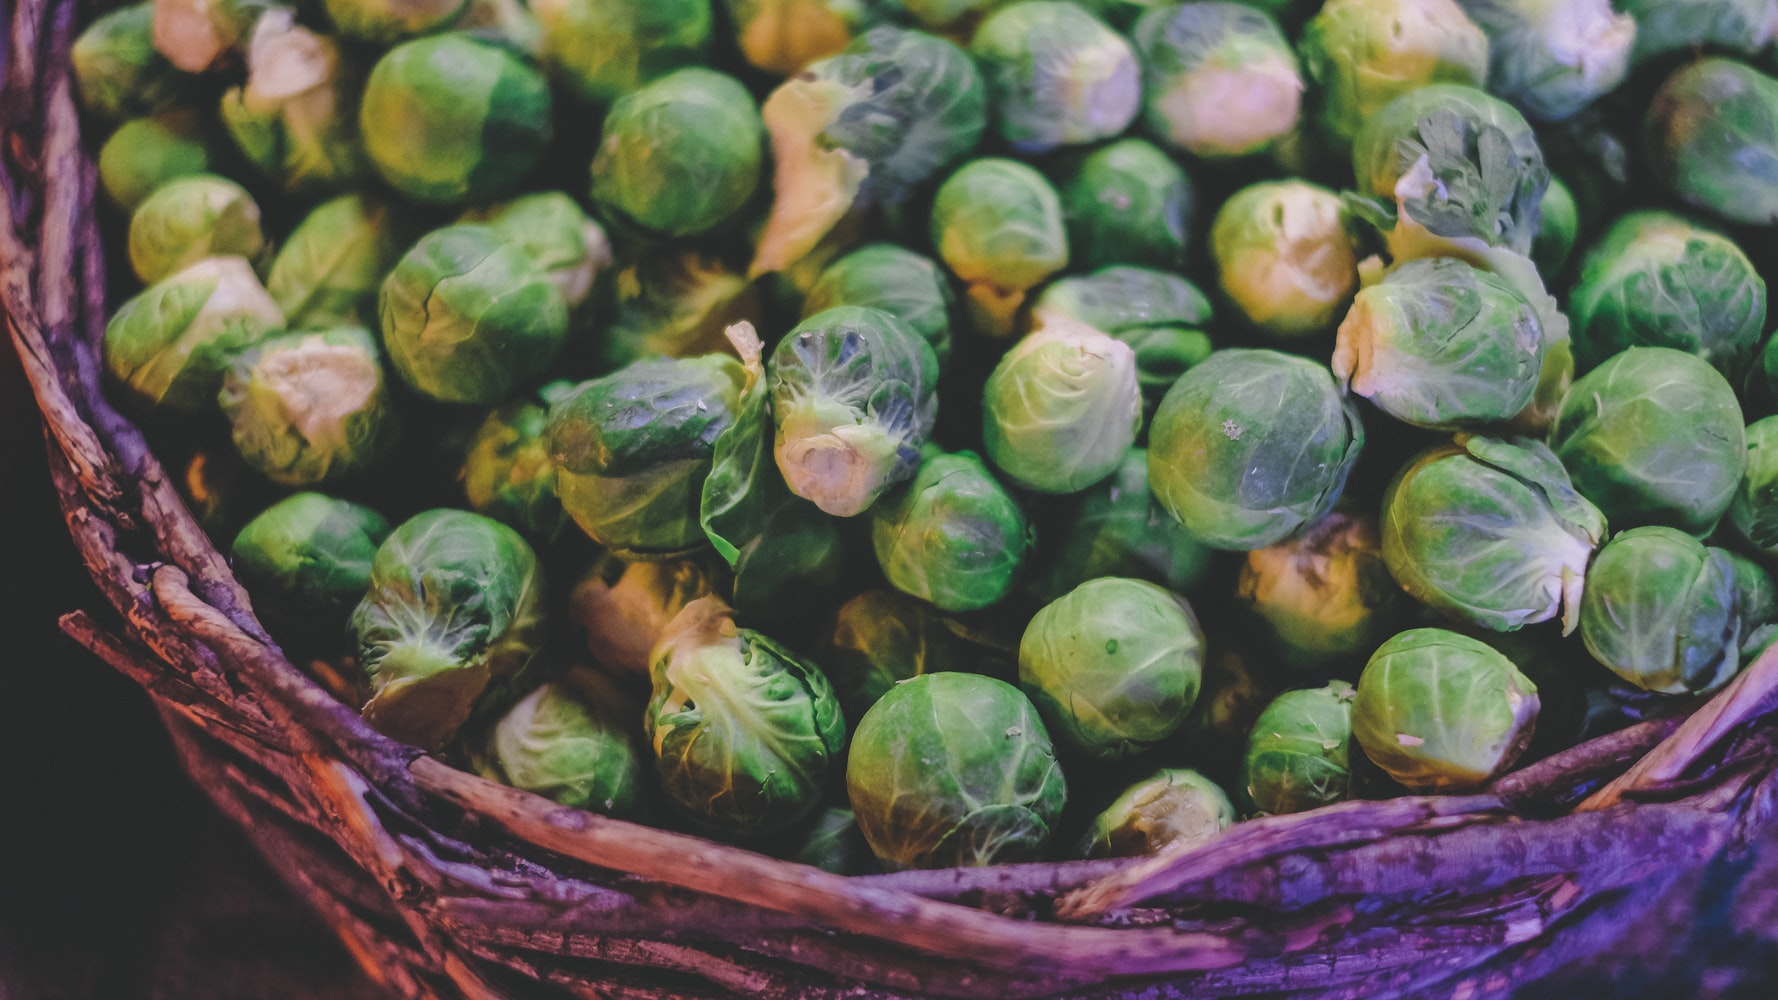 Basket of bright green, sphere shaped brussels sprouts